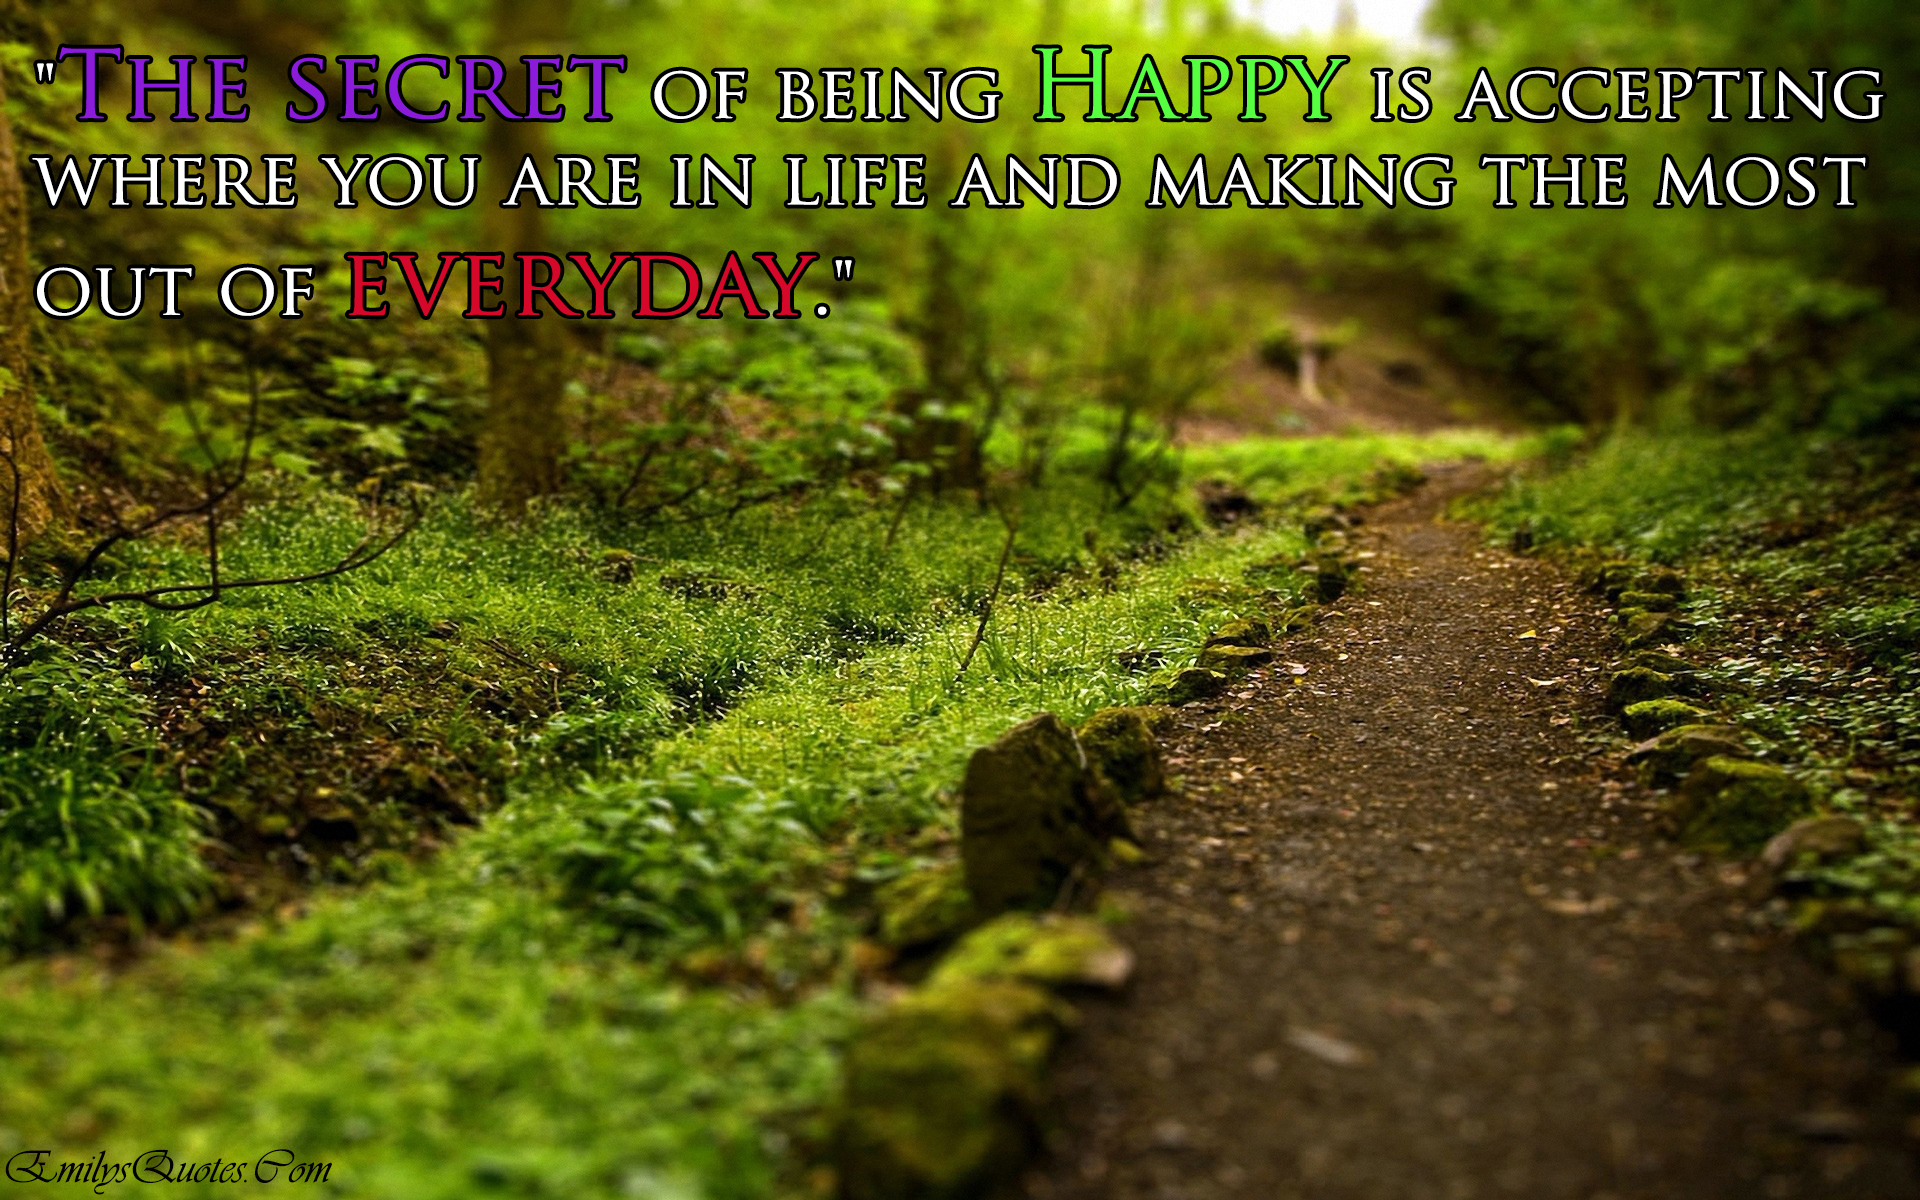 Inspirational Quotes On Happiness And Life The Secret Of Being Happy Is Accepting Where You Are In Life And